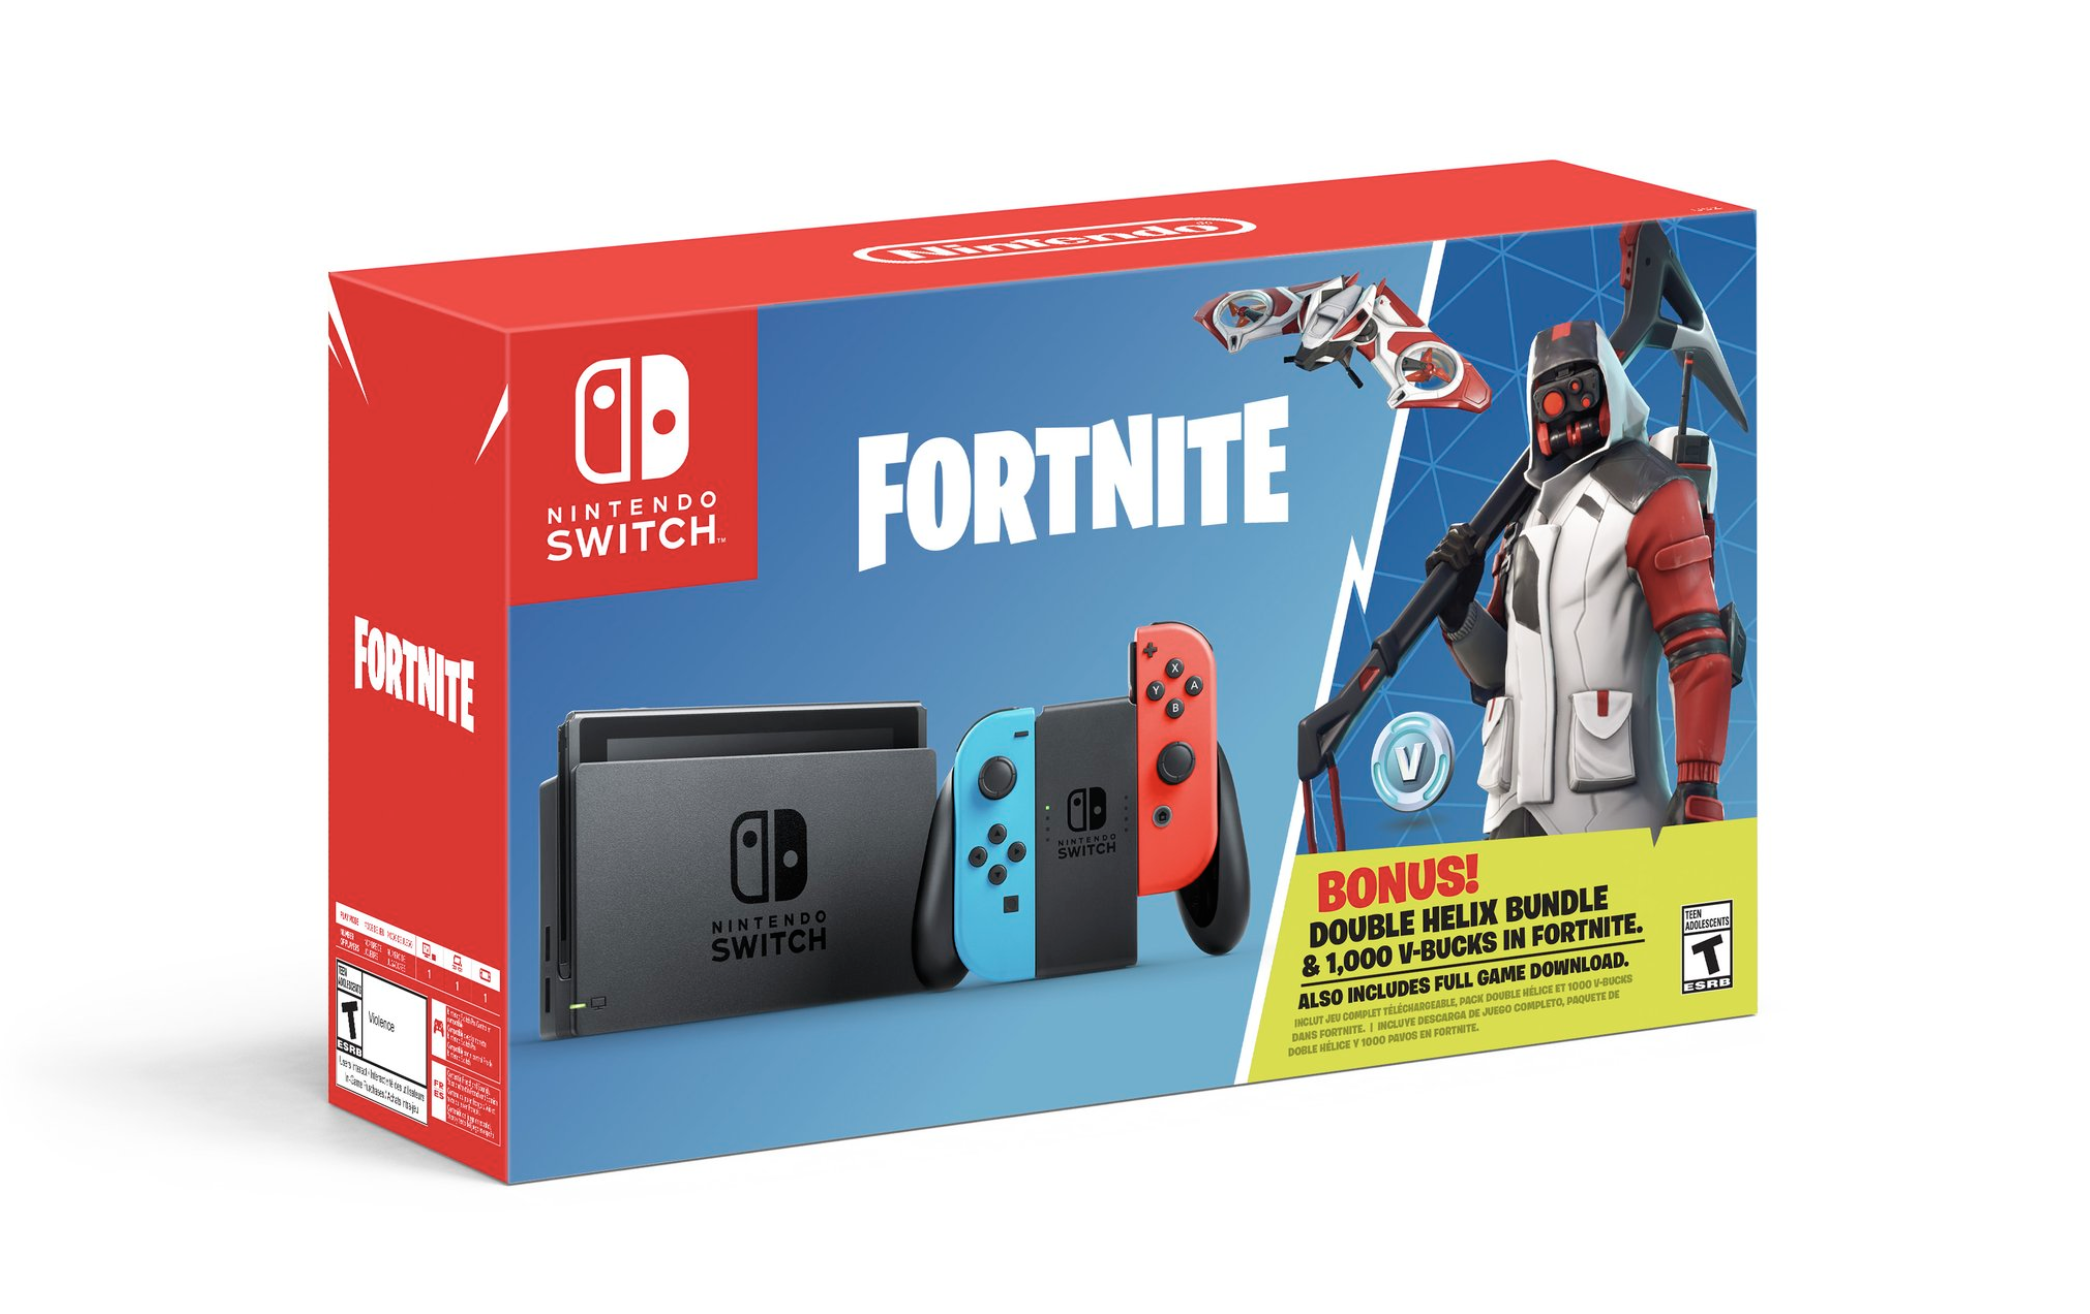 Nintendo is offering an exclusive Fortnite bundle with the Switch